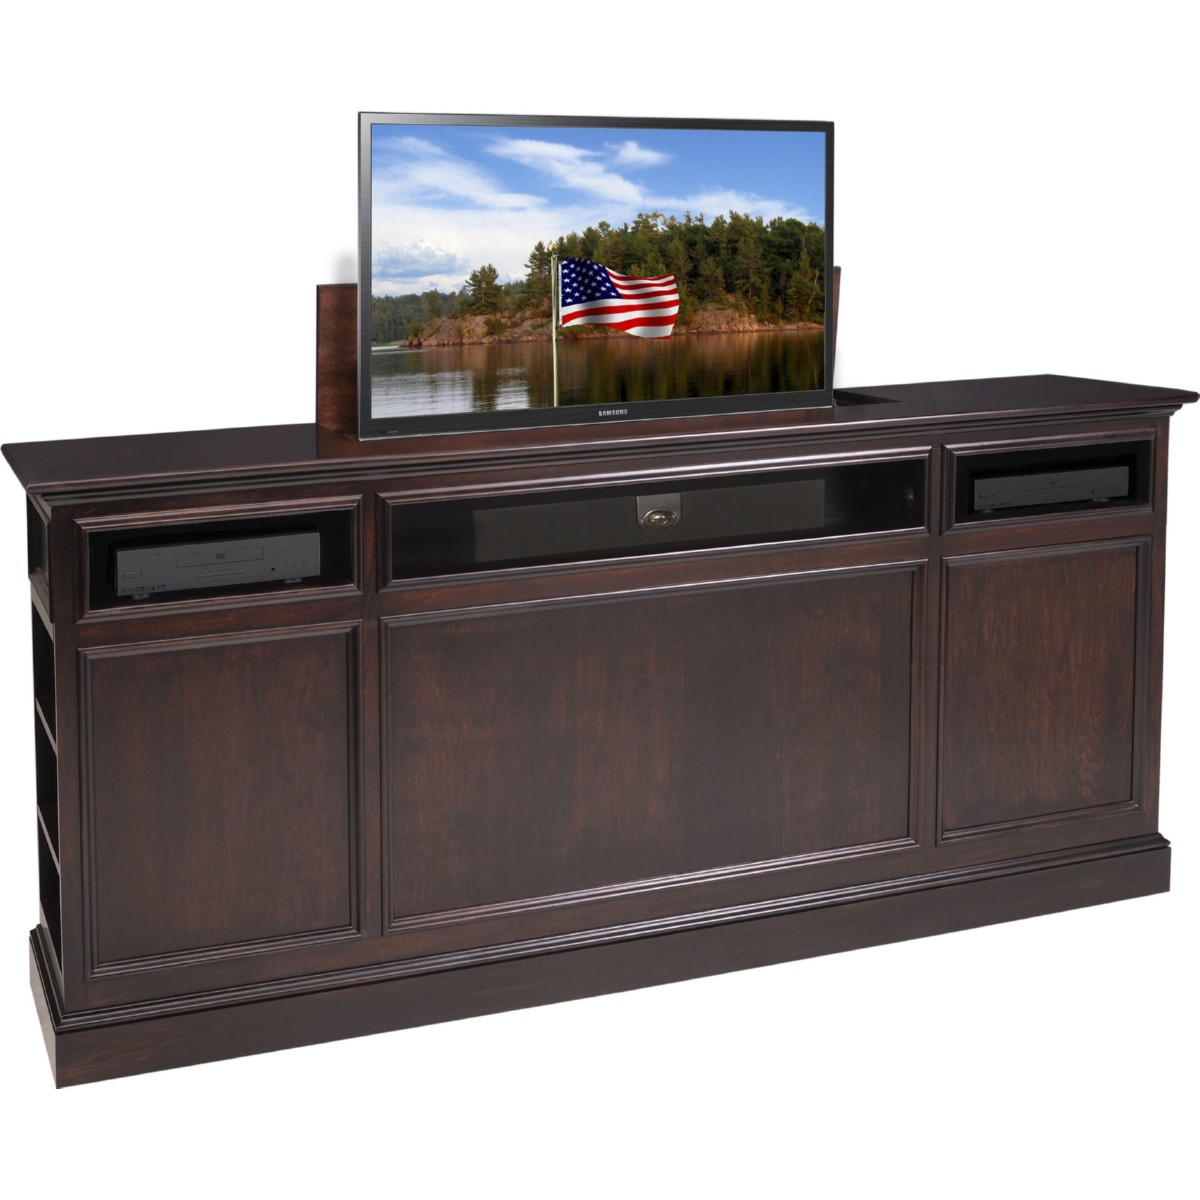 Image Result For Retractable Tv Mount